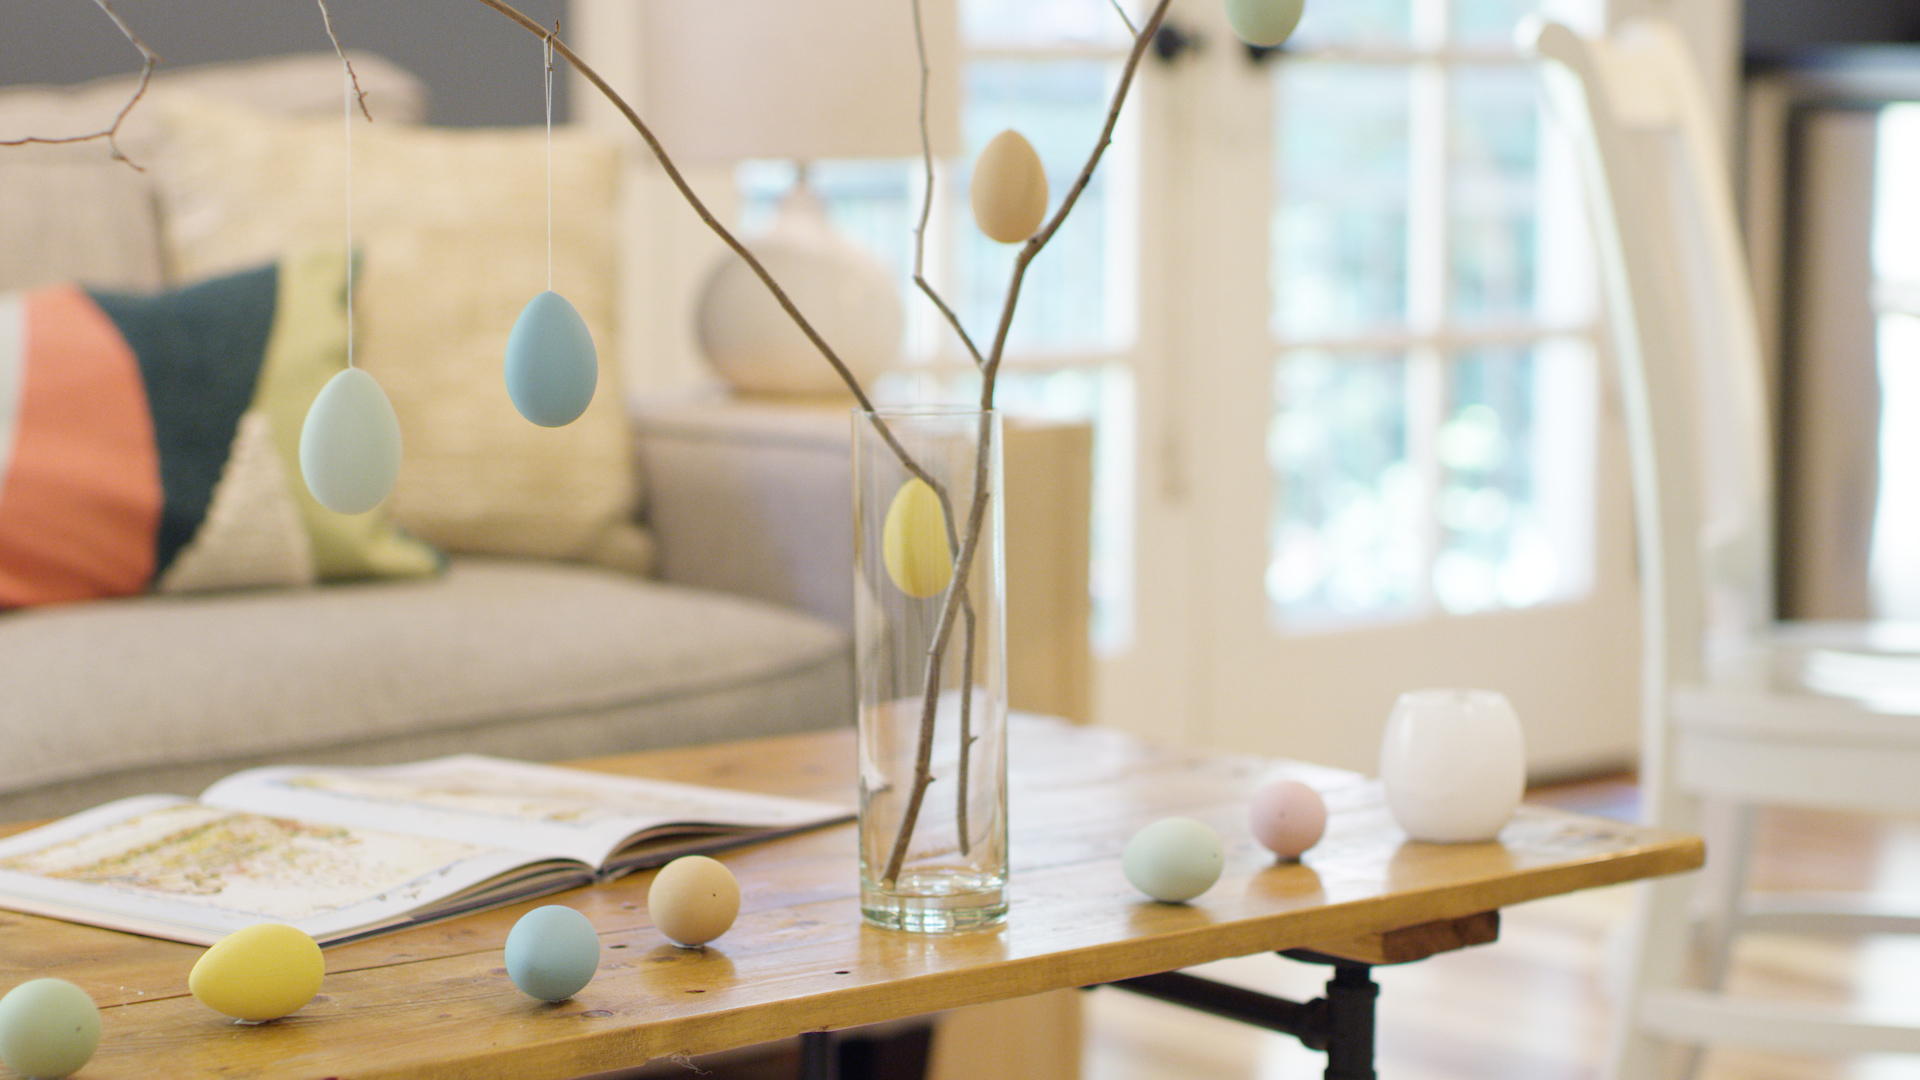 Build an Easter egg tree